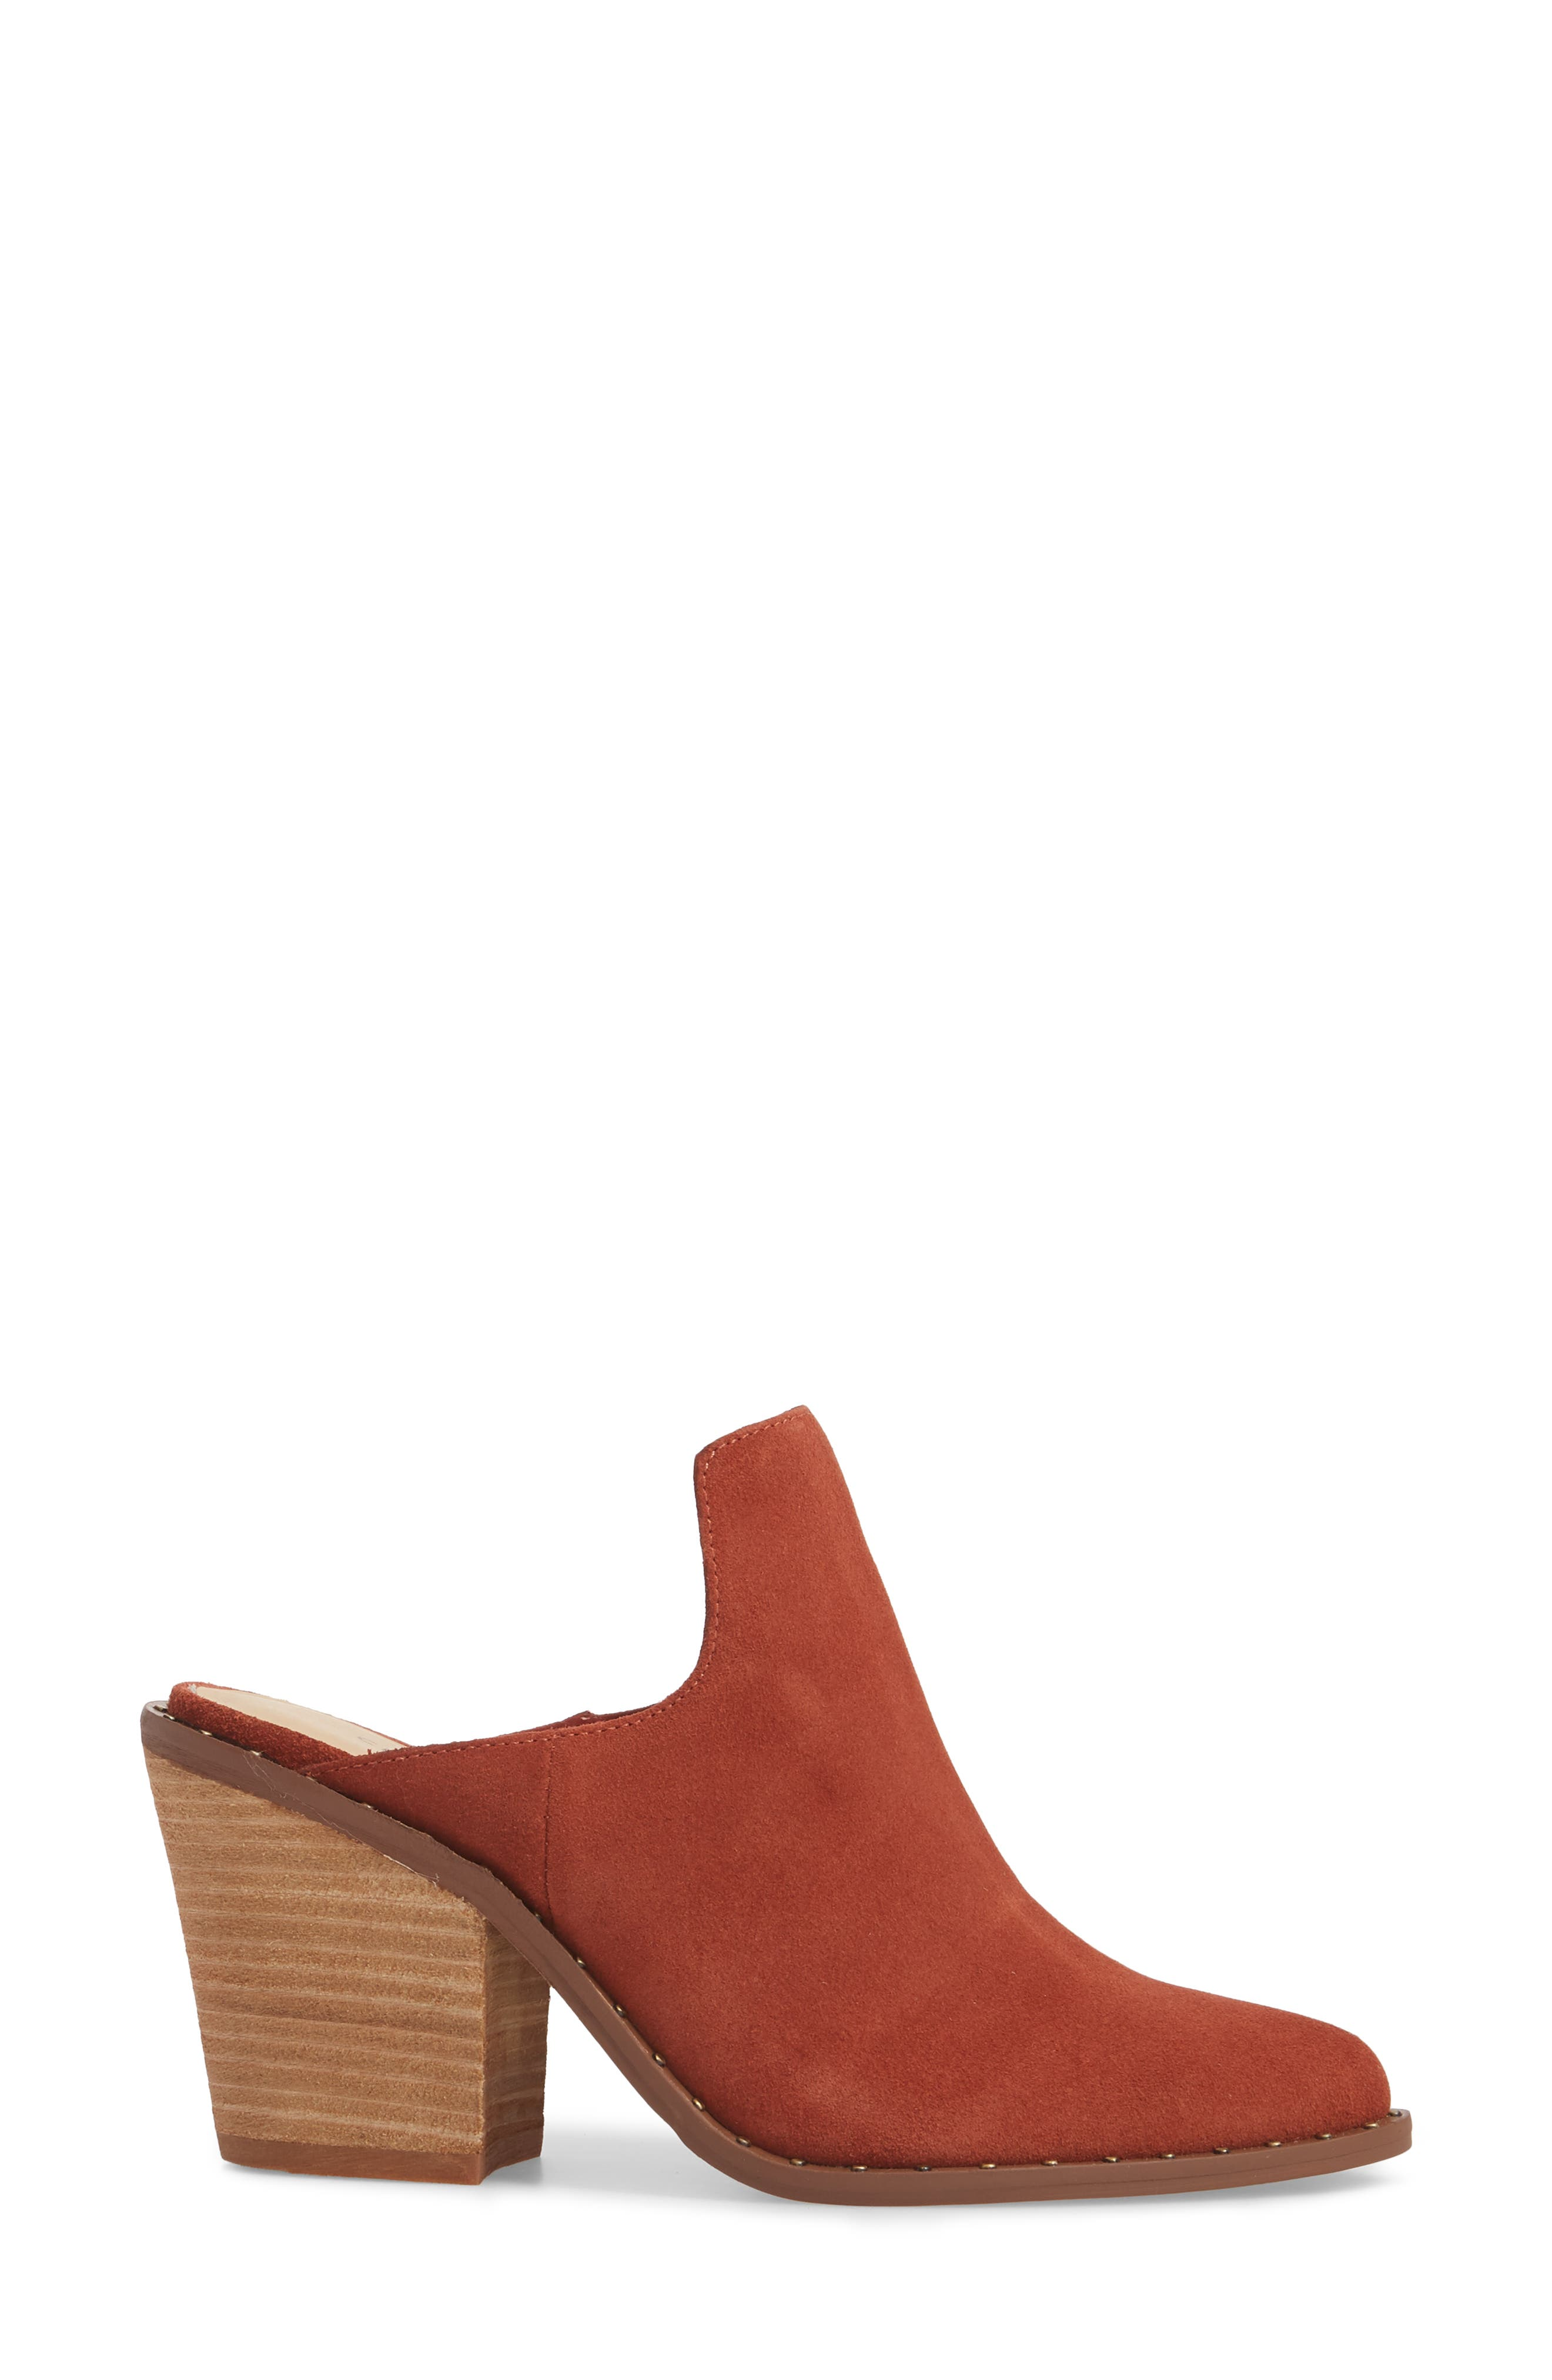 Springfield Mule Bootie,                             Alternate thumbnail 3, color,                             Clay